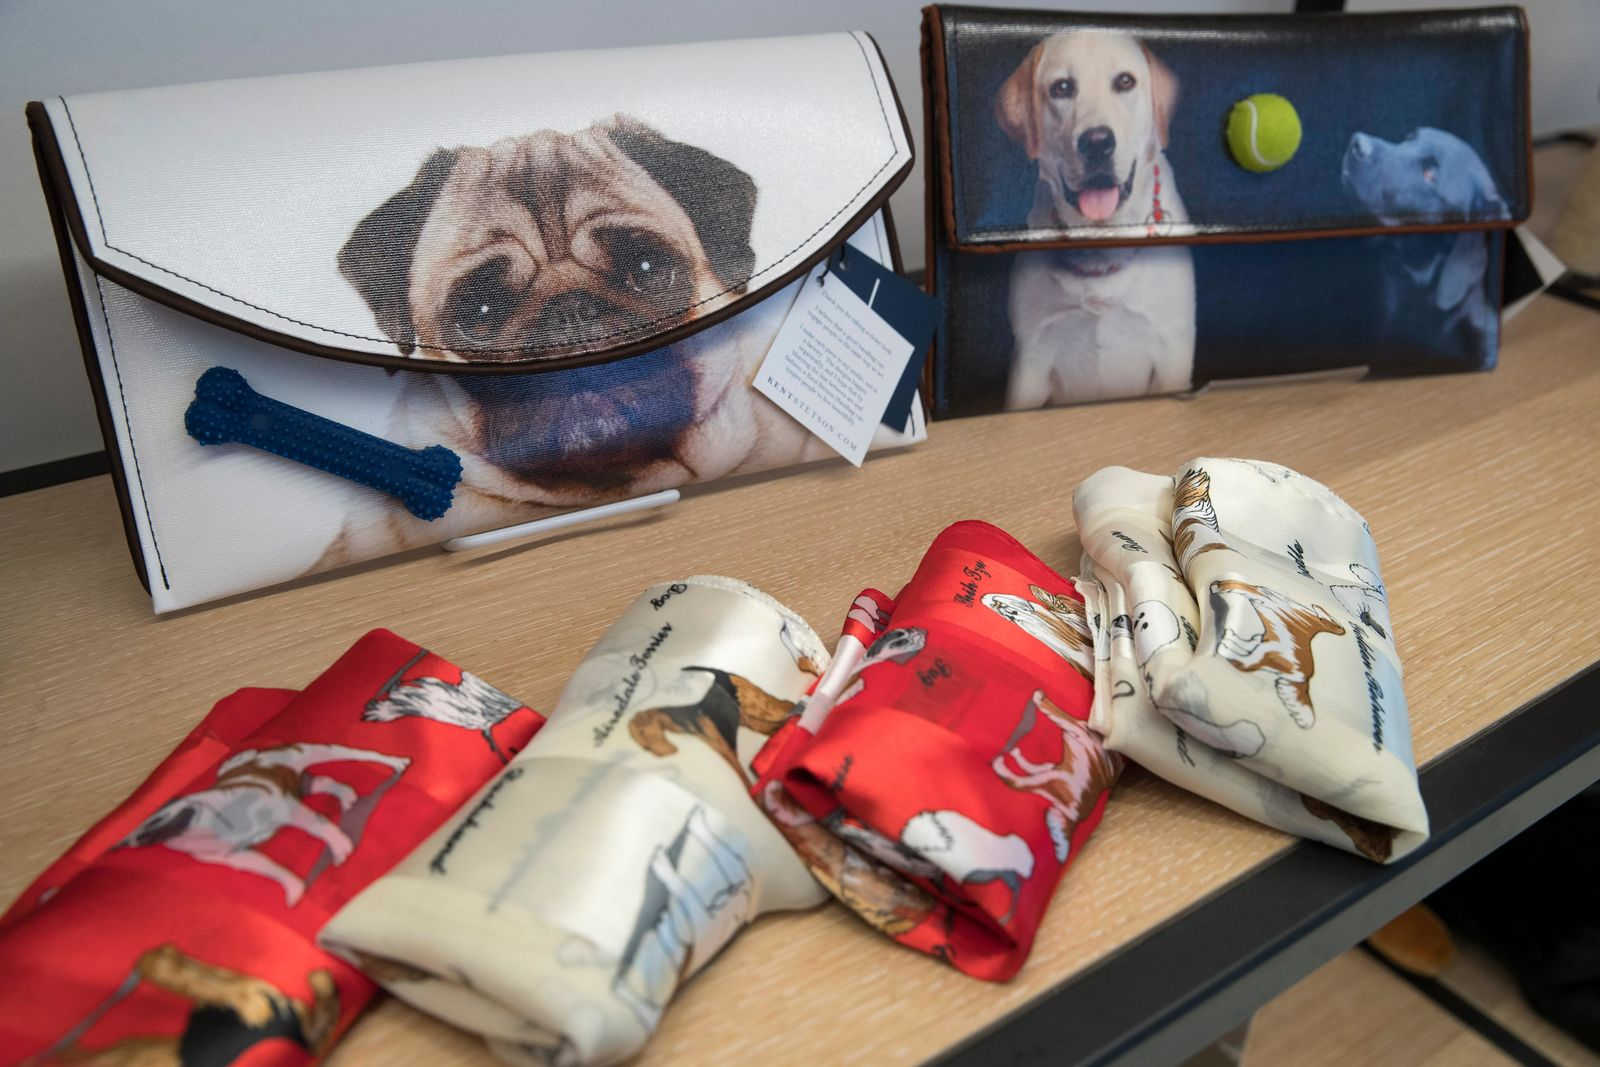 This Wednesday, Jan. 9, 2019, photo shows dog themed scarves and clutches that are on display for sale in the American Kennel Club Museum of the Dog's store in New York. The museum opens Feb. 8. (AP Photo/Mary Altaffer)